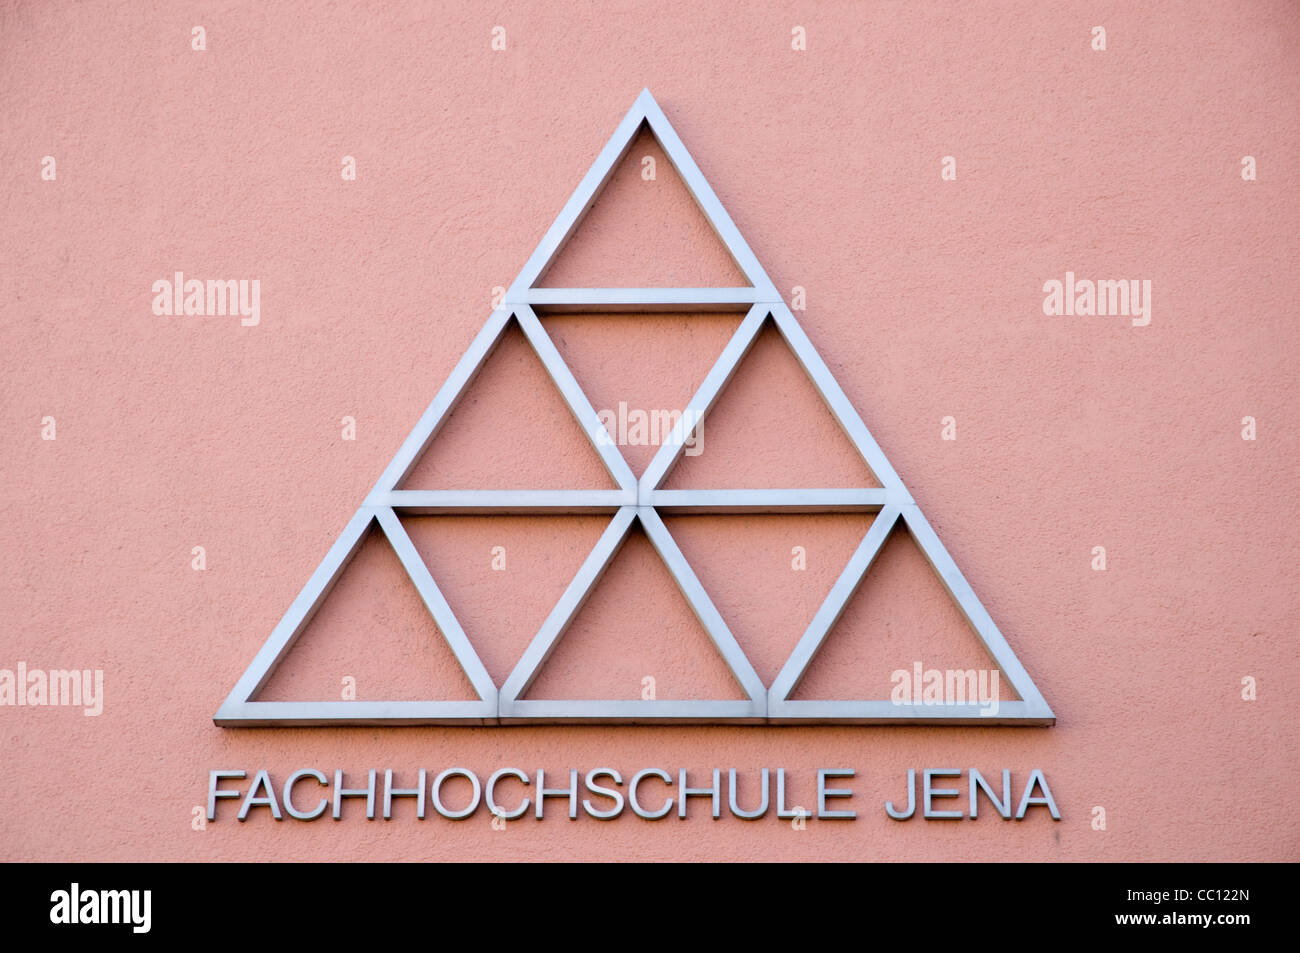 Logo of Fachhochschule Jena, University of Applied Sciences, Jena, Thuringia, Germany - Stock Image